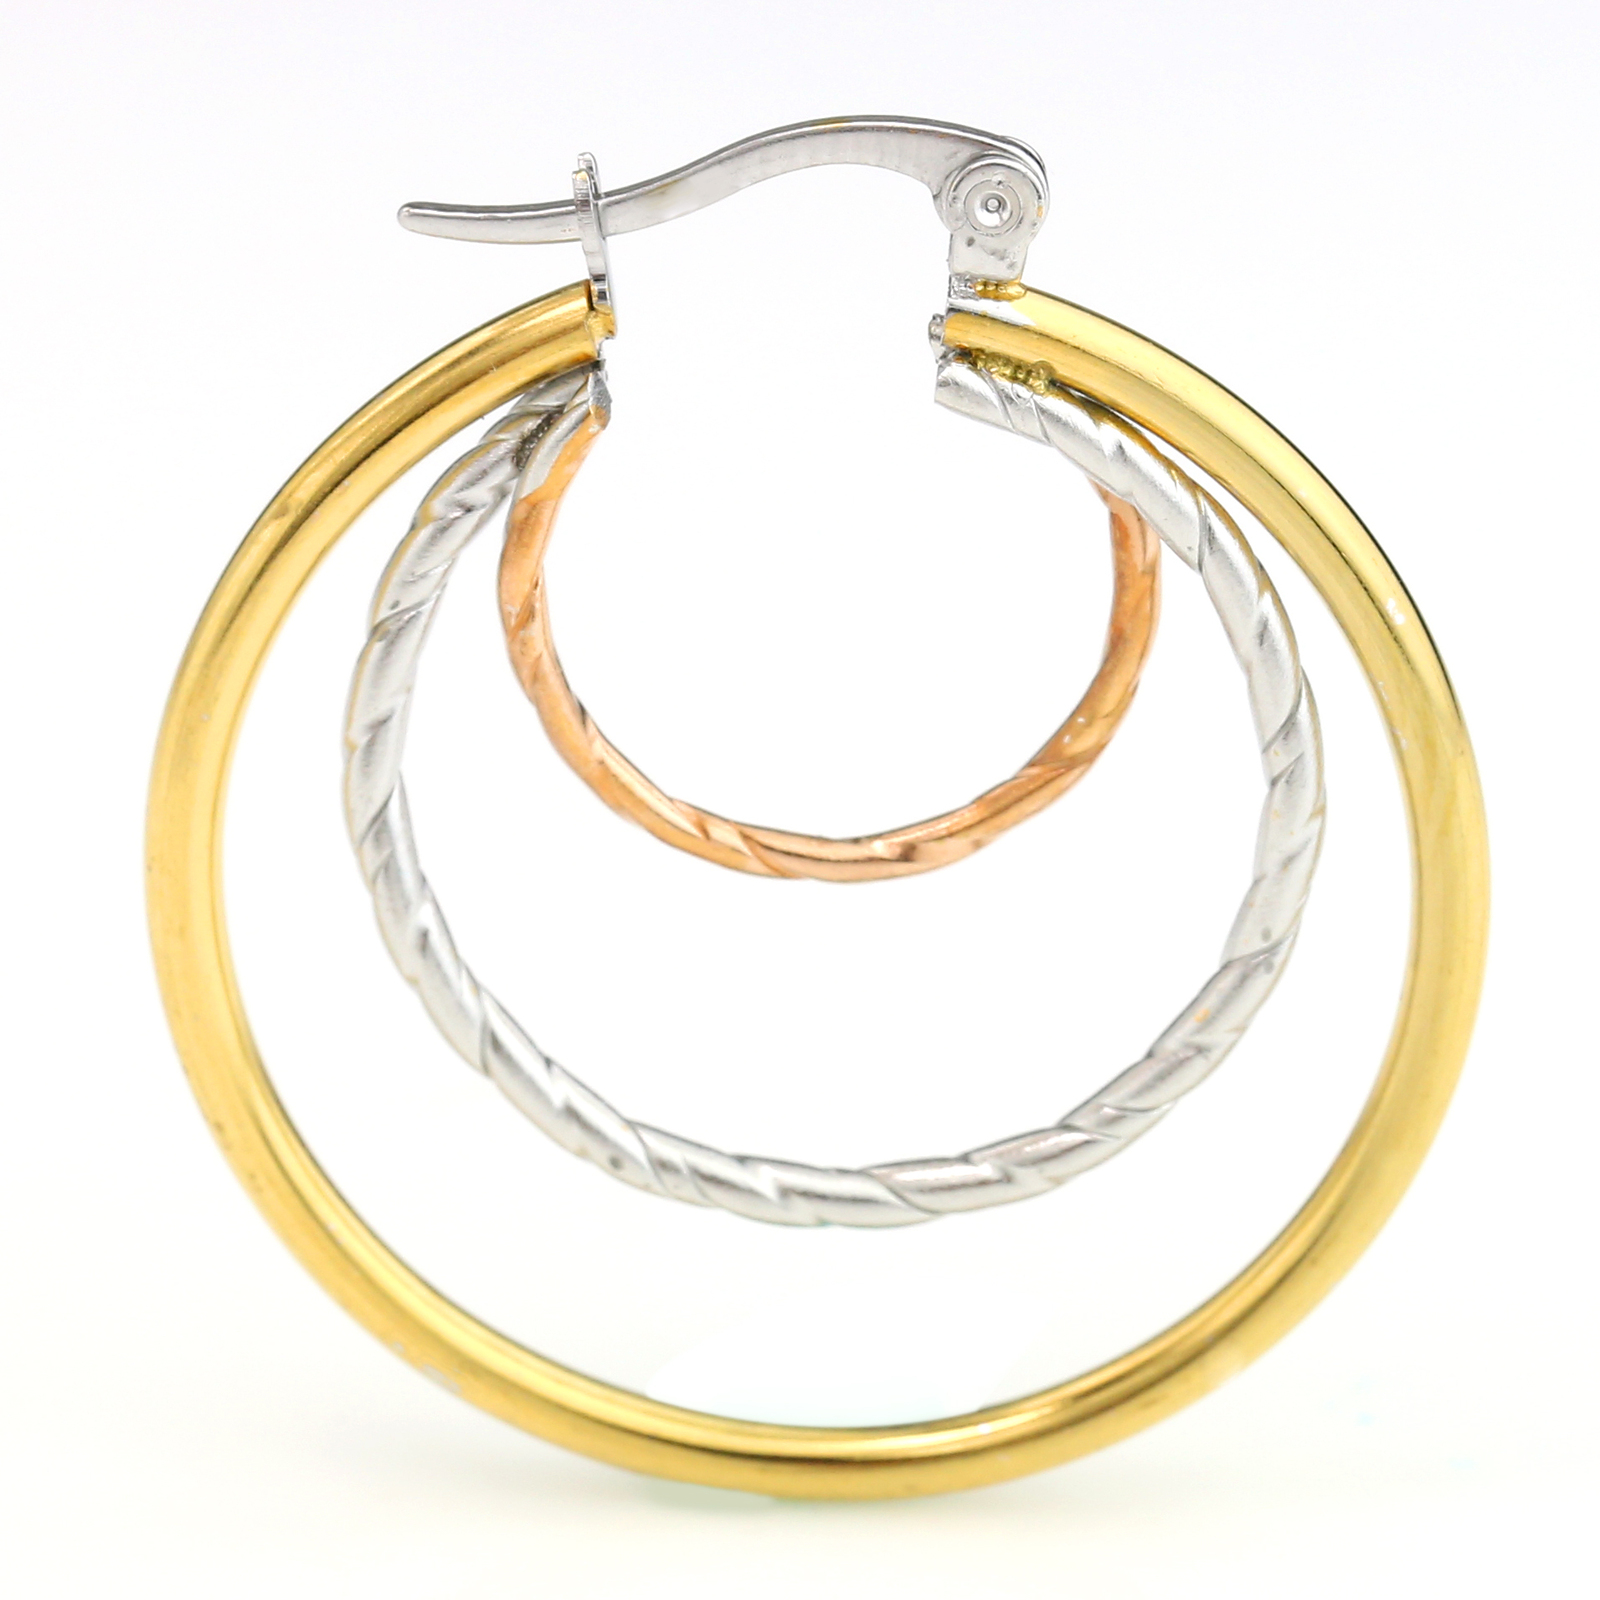 Contemporary Tri-Color Silver, Gold & Rose Tone Hoop Earrings- United Elegance